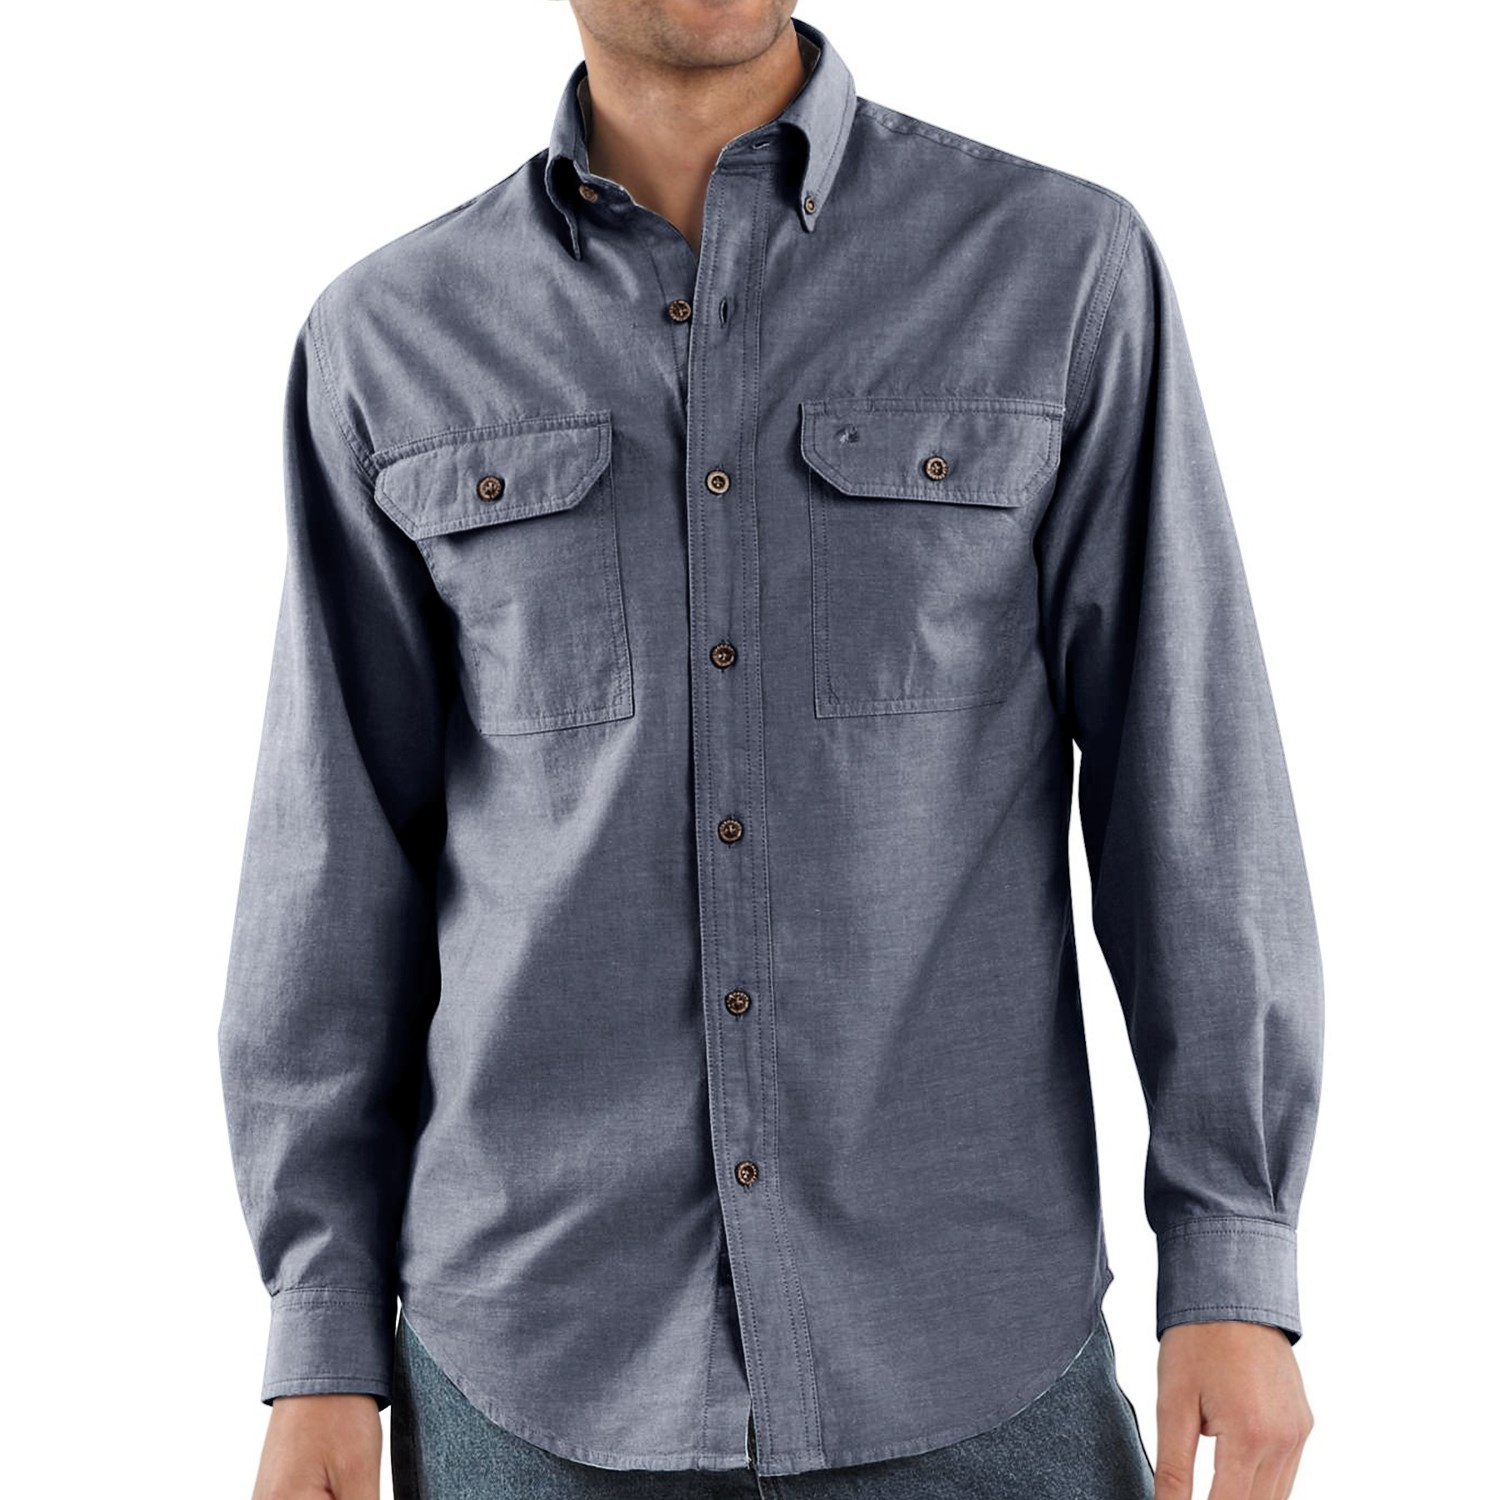 10 Best Chambray Shirts For Men Posted in GEAR GUIDES, SHIRTS By Beau Hayhoe If there's a modern answer to past style classics like the blue Oxford, it just might be the chambray shirt.